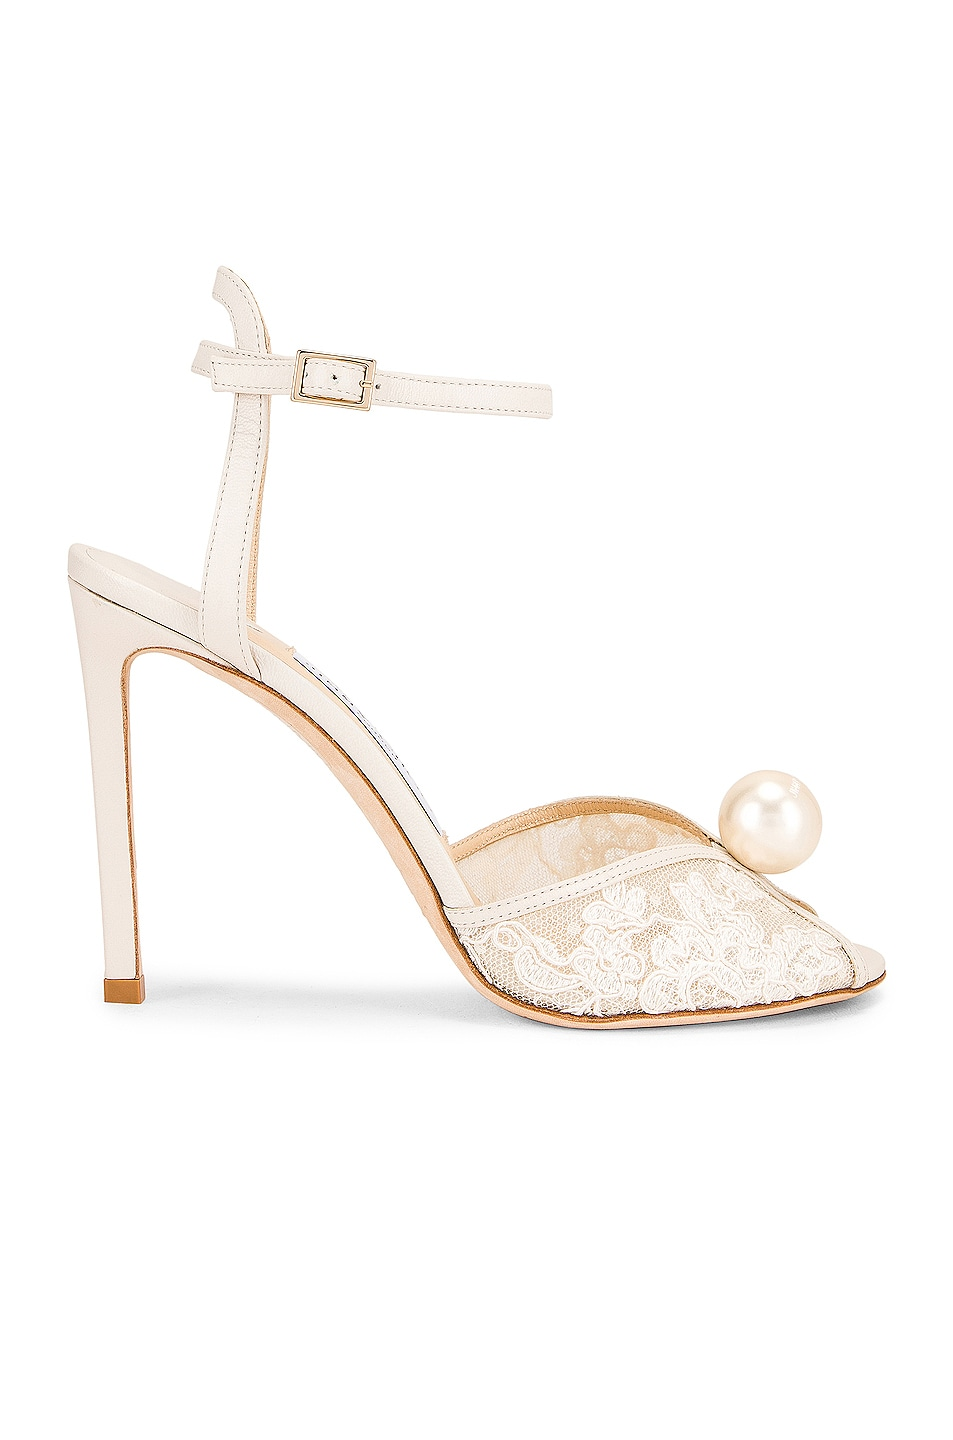 Image 1 of Jimmy Choo Sacora 100 Floral Lace with Pearl Sandal in White